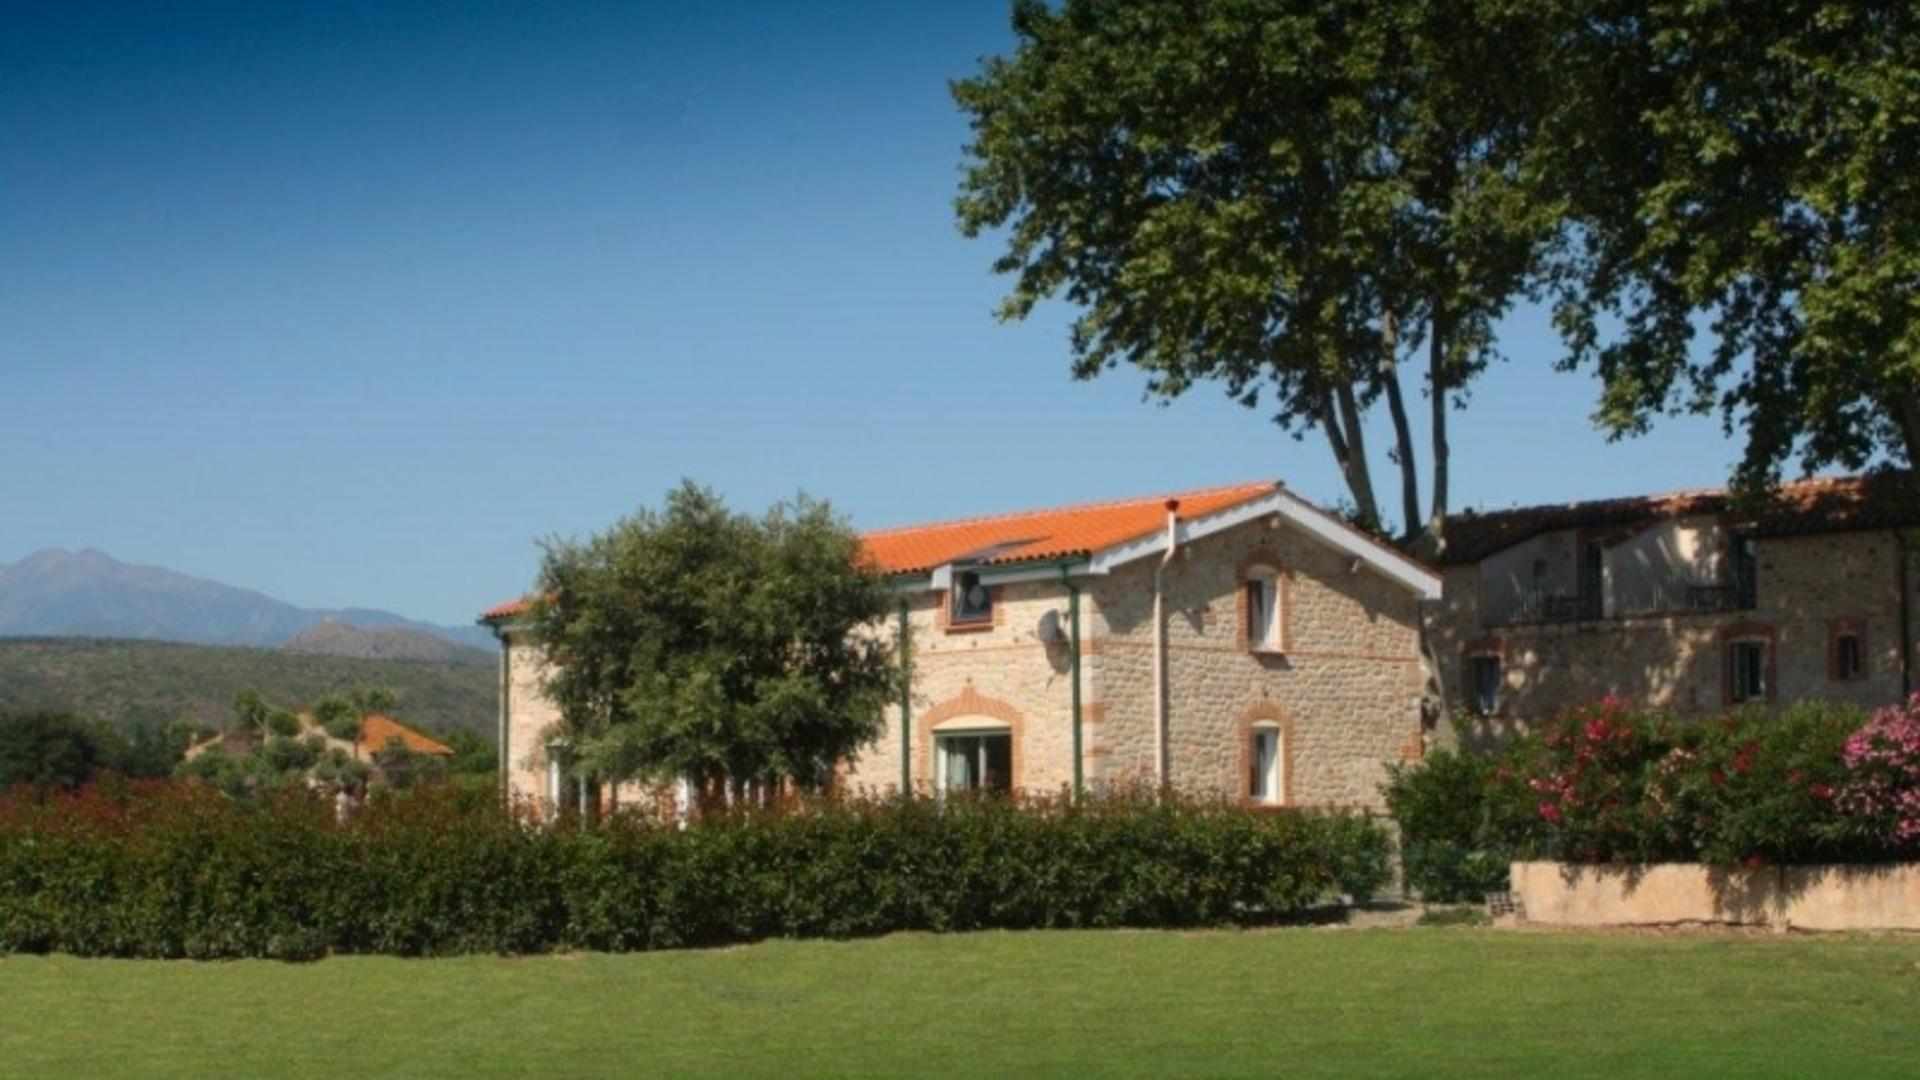 Private child-friendly villa in Languedoc-Rousillon - ADMM